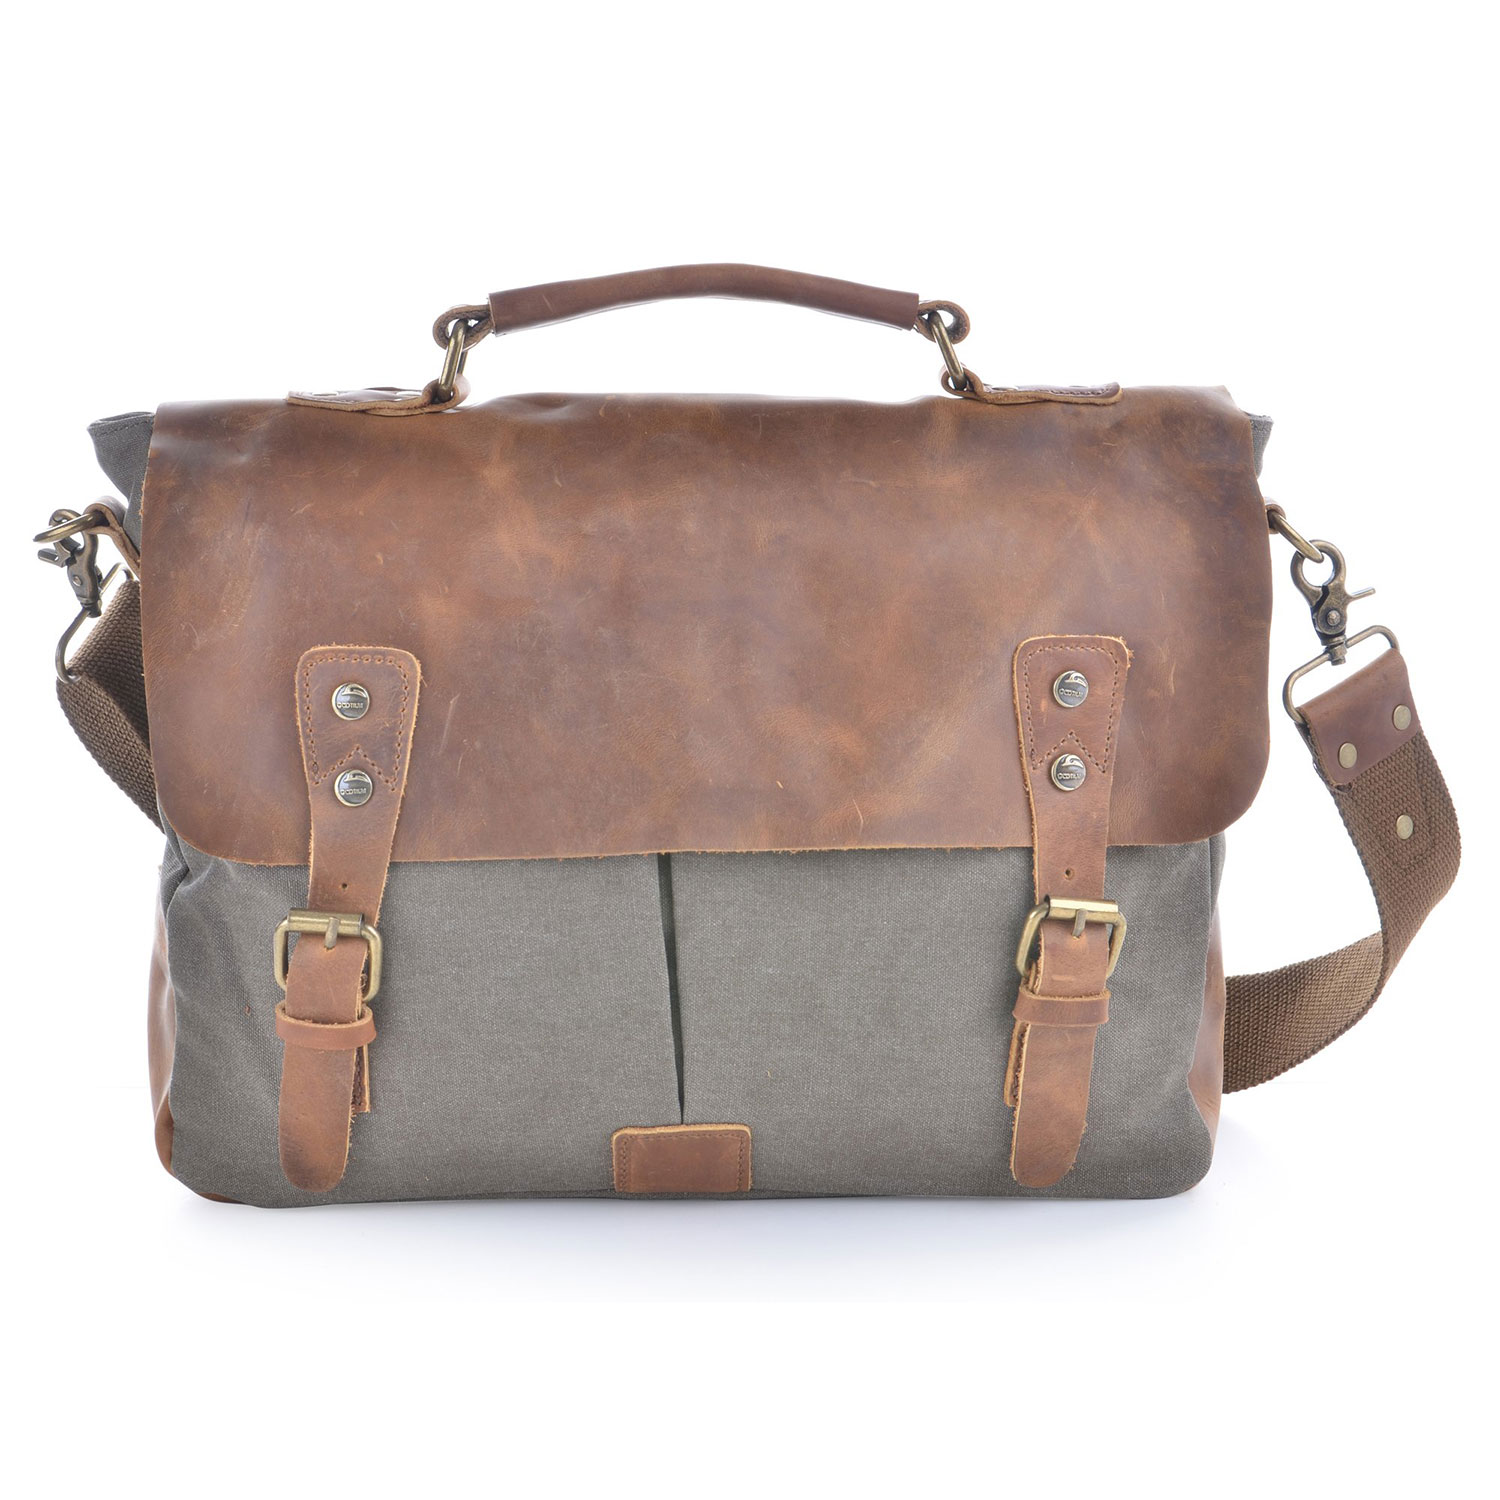 Gootium 21108 Cotton Canvas Leather Messenger Bag